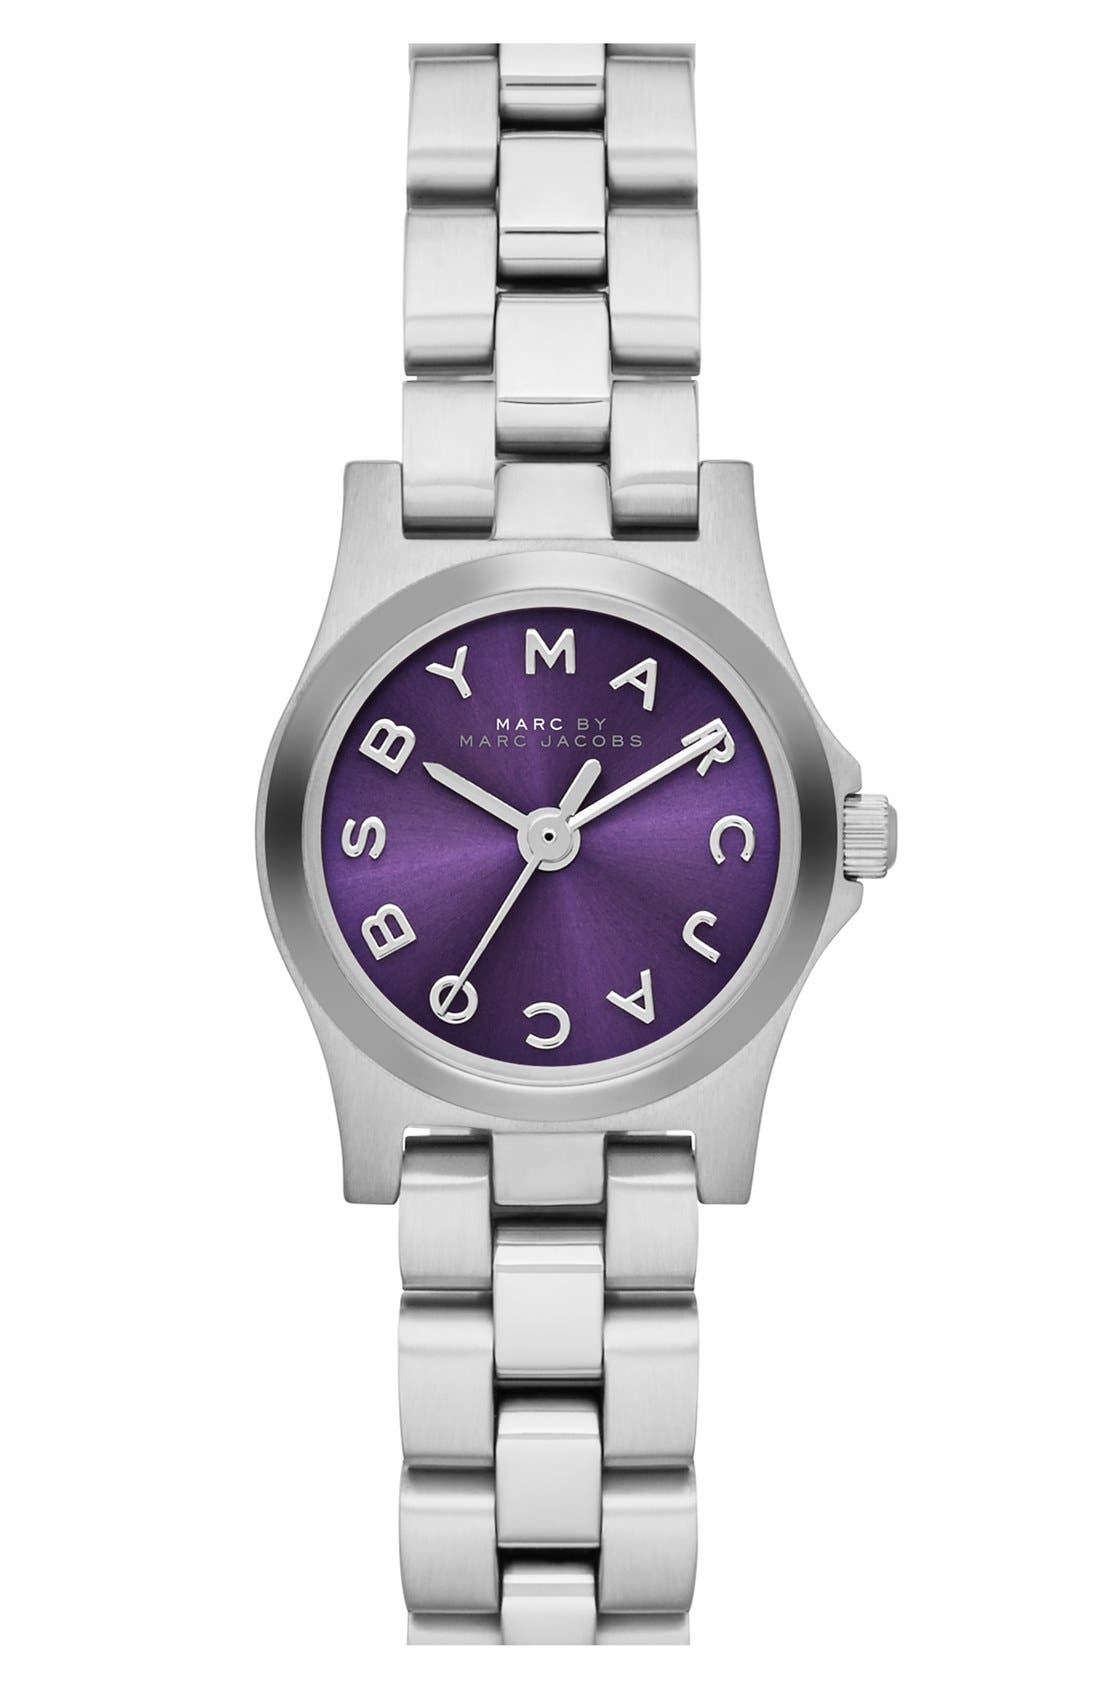 Main Image - MARC JACOBS 'Henry Dinky' Bracelet Watch, 20mm